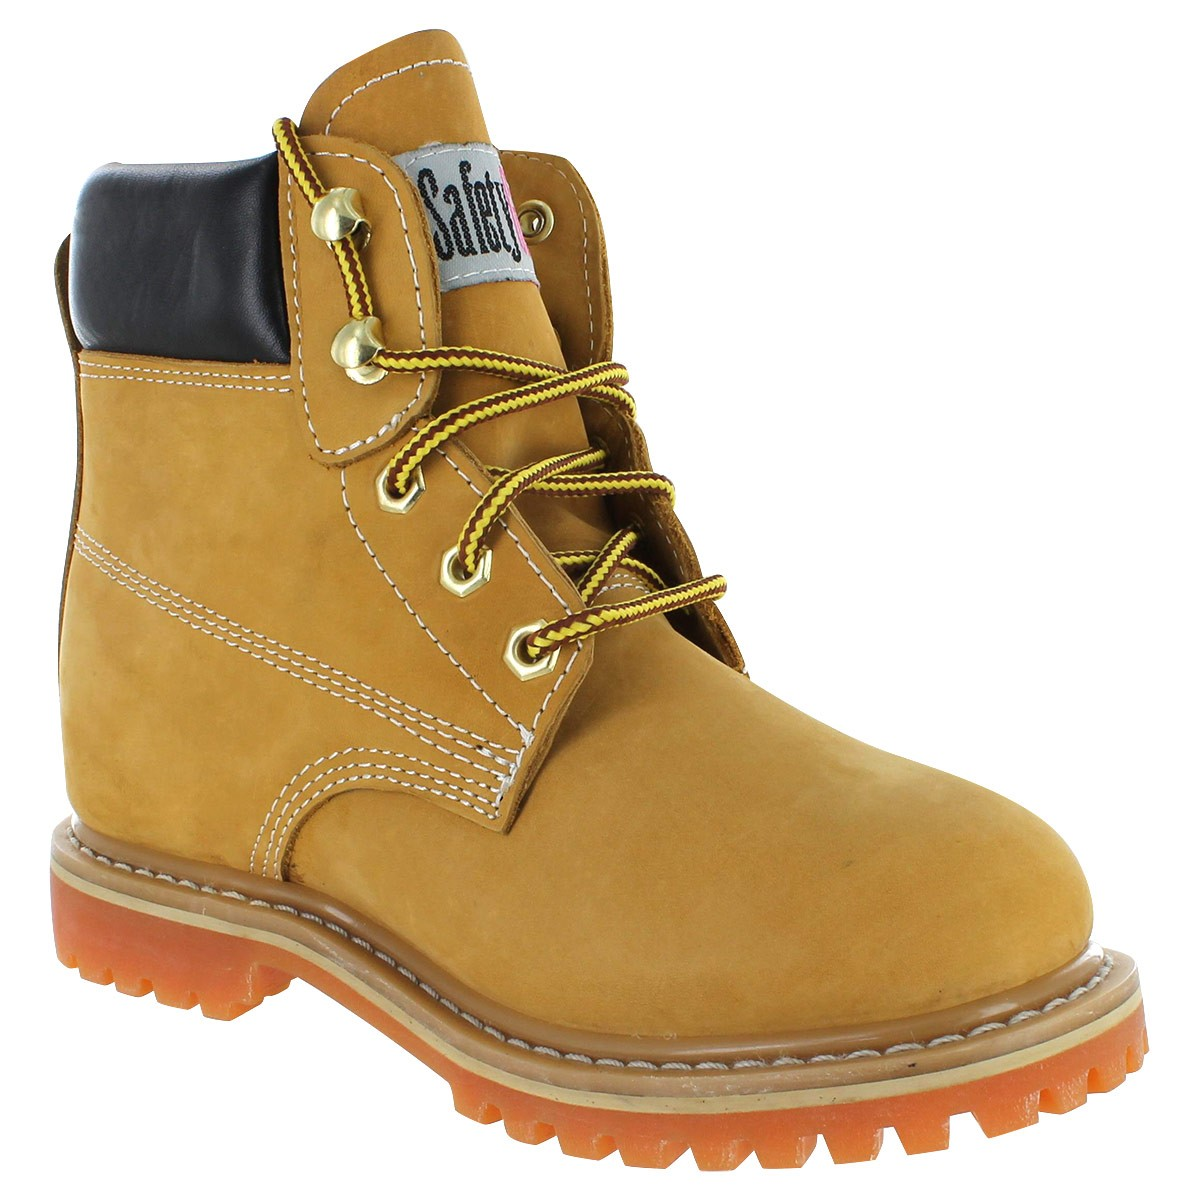 womens work boots safety girl ii sheepskin lined work boots - tan IPMAYUT